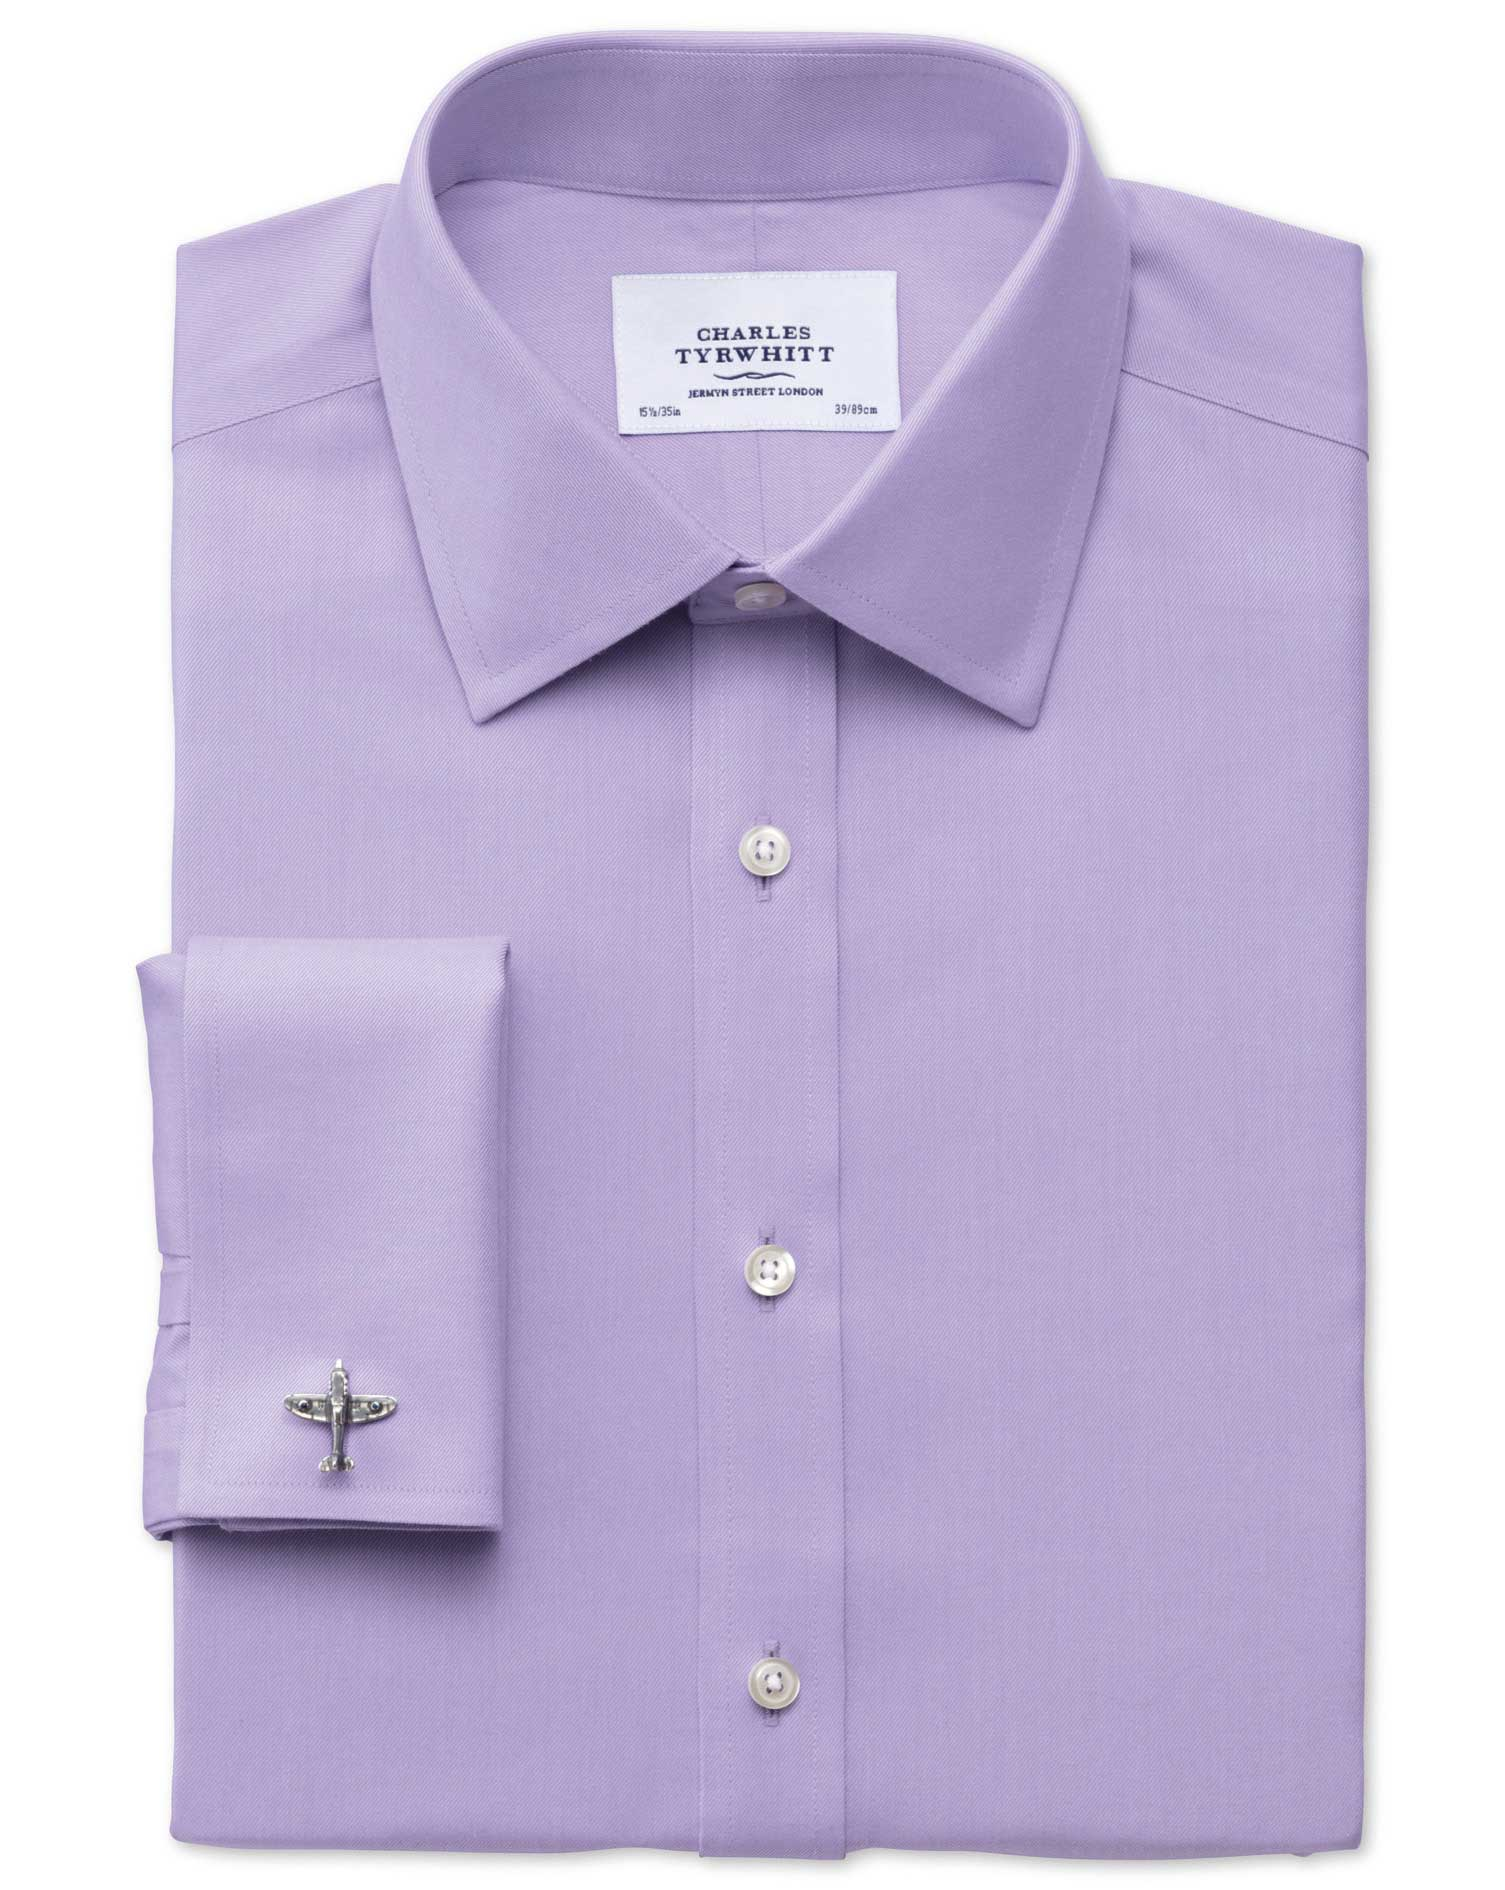 Classic Fit Non-Iron Twill Lilac Cotton Formal Shirt Double Cuff Size 15/35 by Charles Tyrwhitt